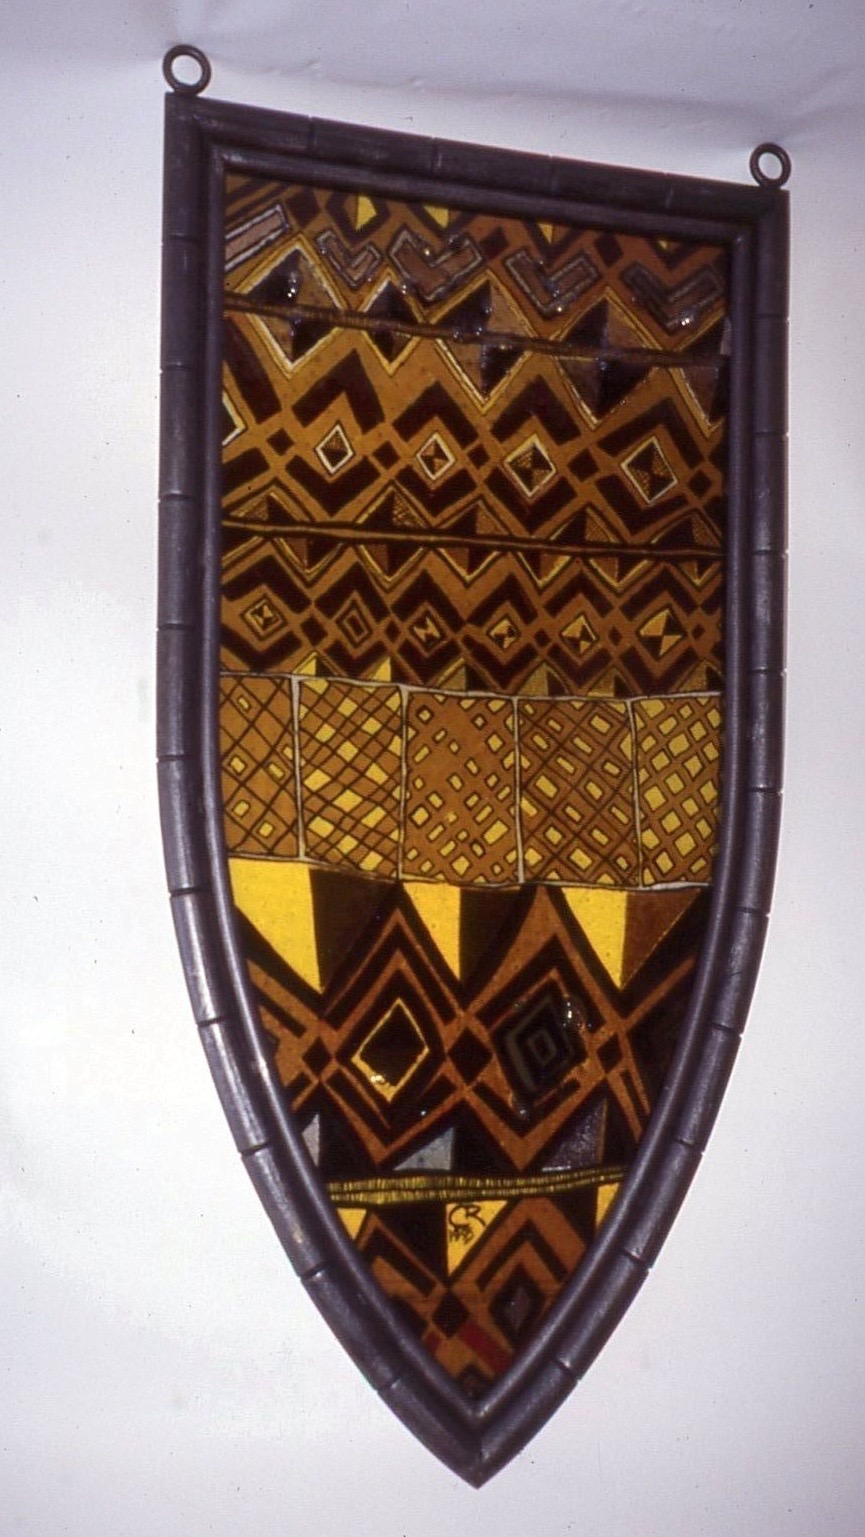 GothicKubaWindow Panel 2, 1995-1996,21Wx41H,stained glass, paint,wire cloth, steel-CUNY.jpg